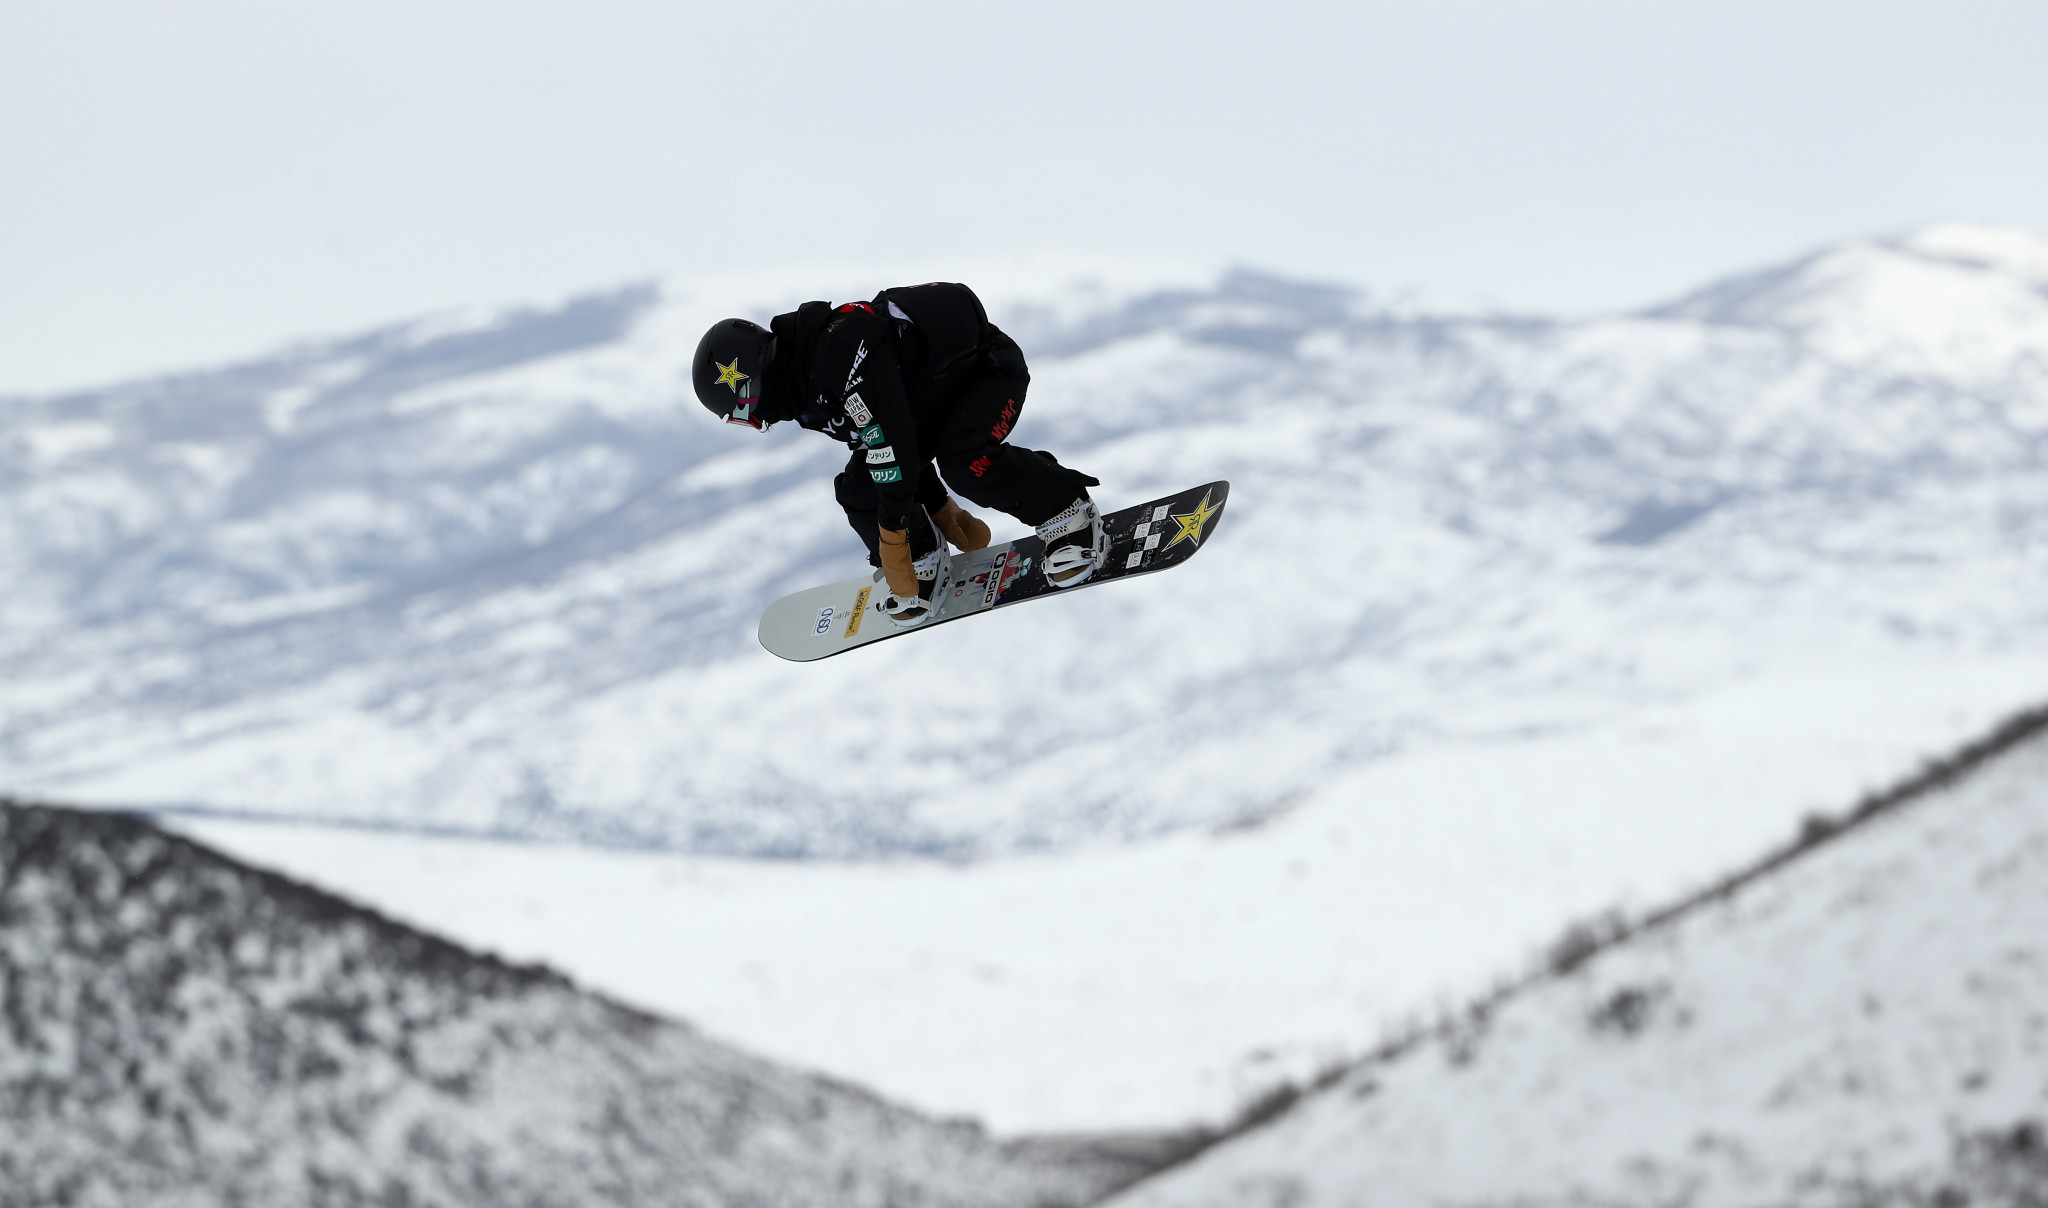 FIS Snowboard Big Air World Cup winners to be named in Atlanta